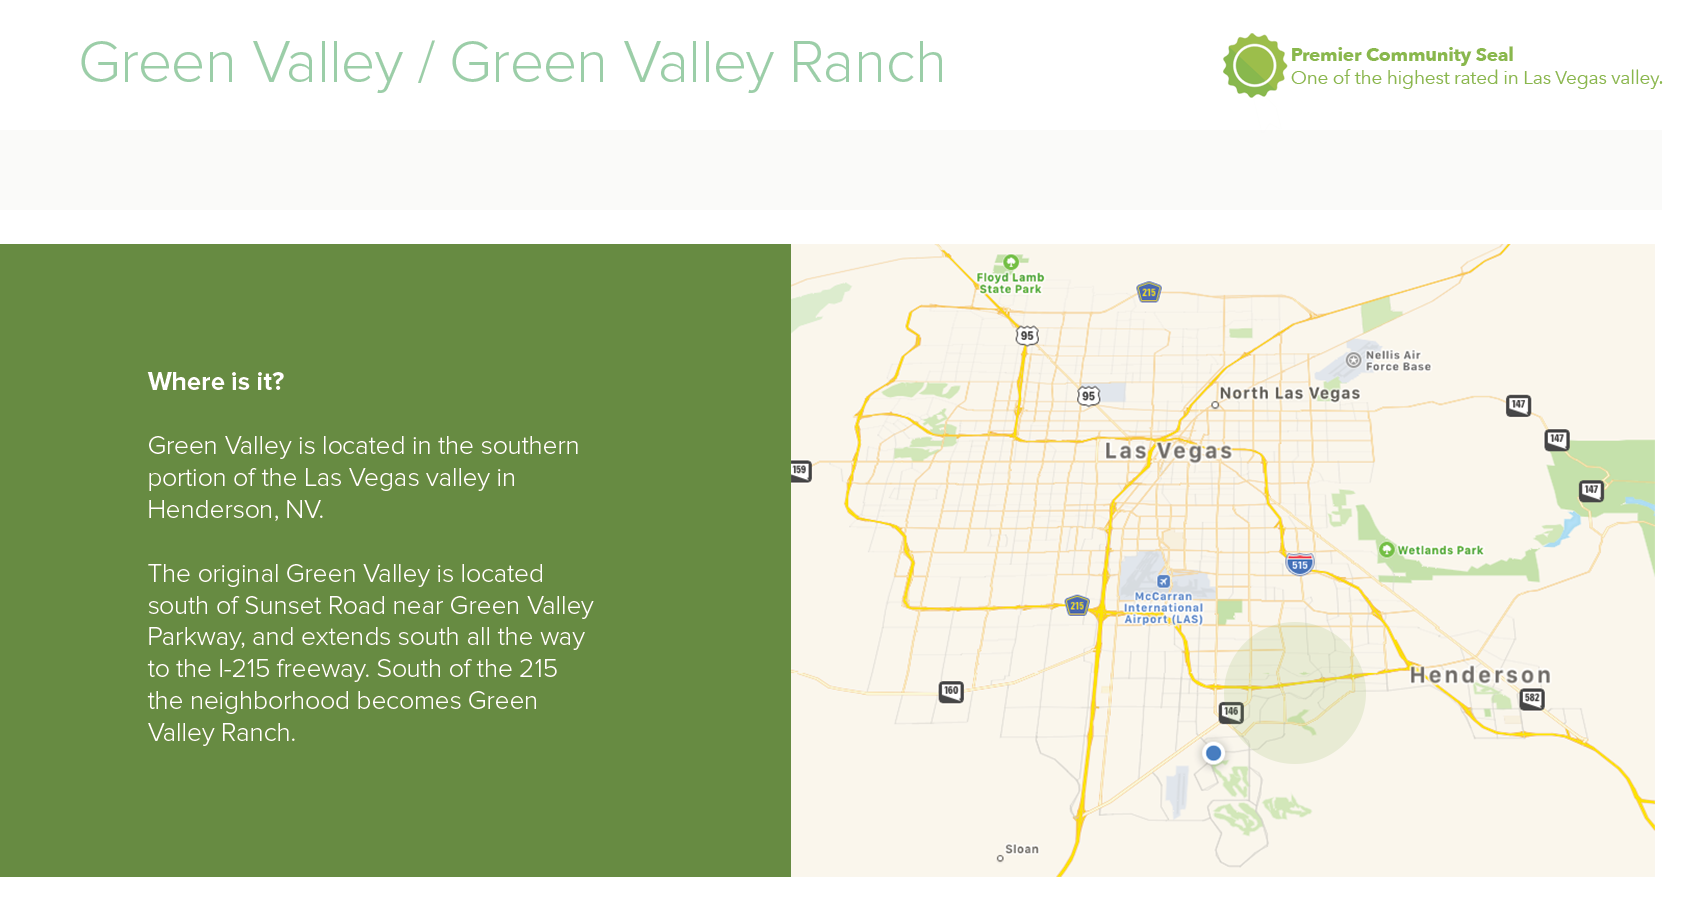 Beautifulhomes vegas - Green Valley / Green Valley Ranch Search